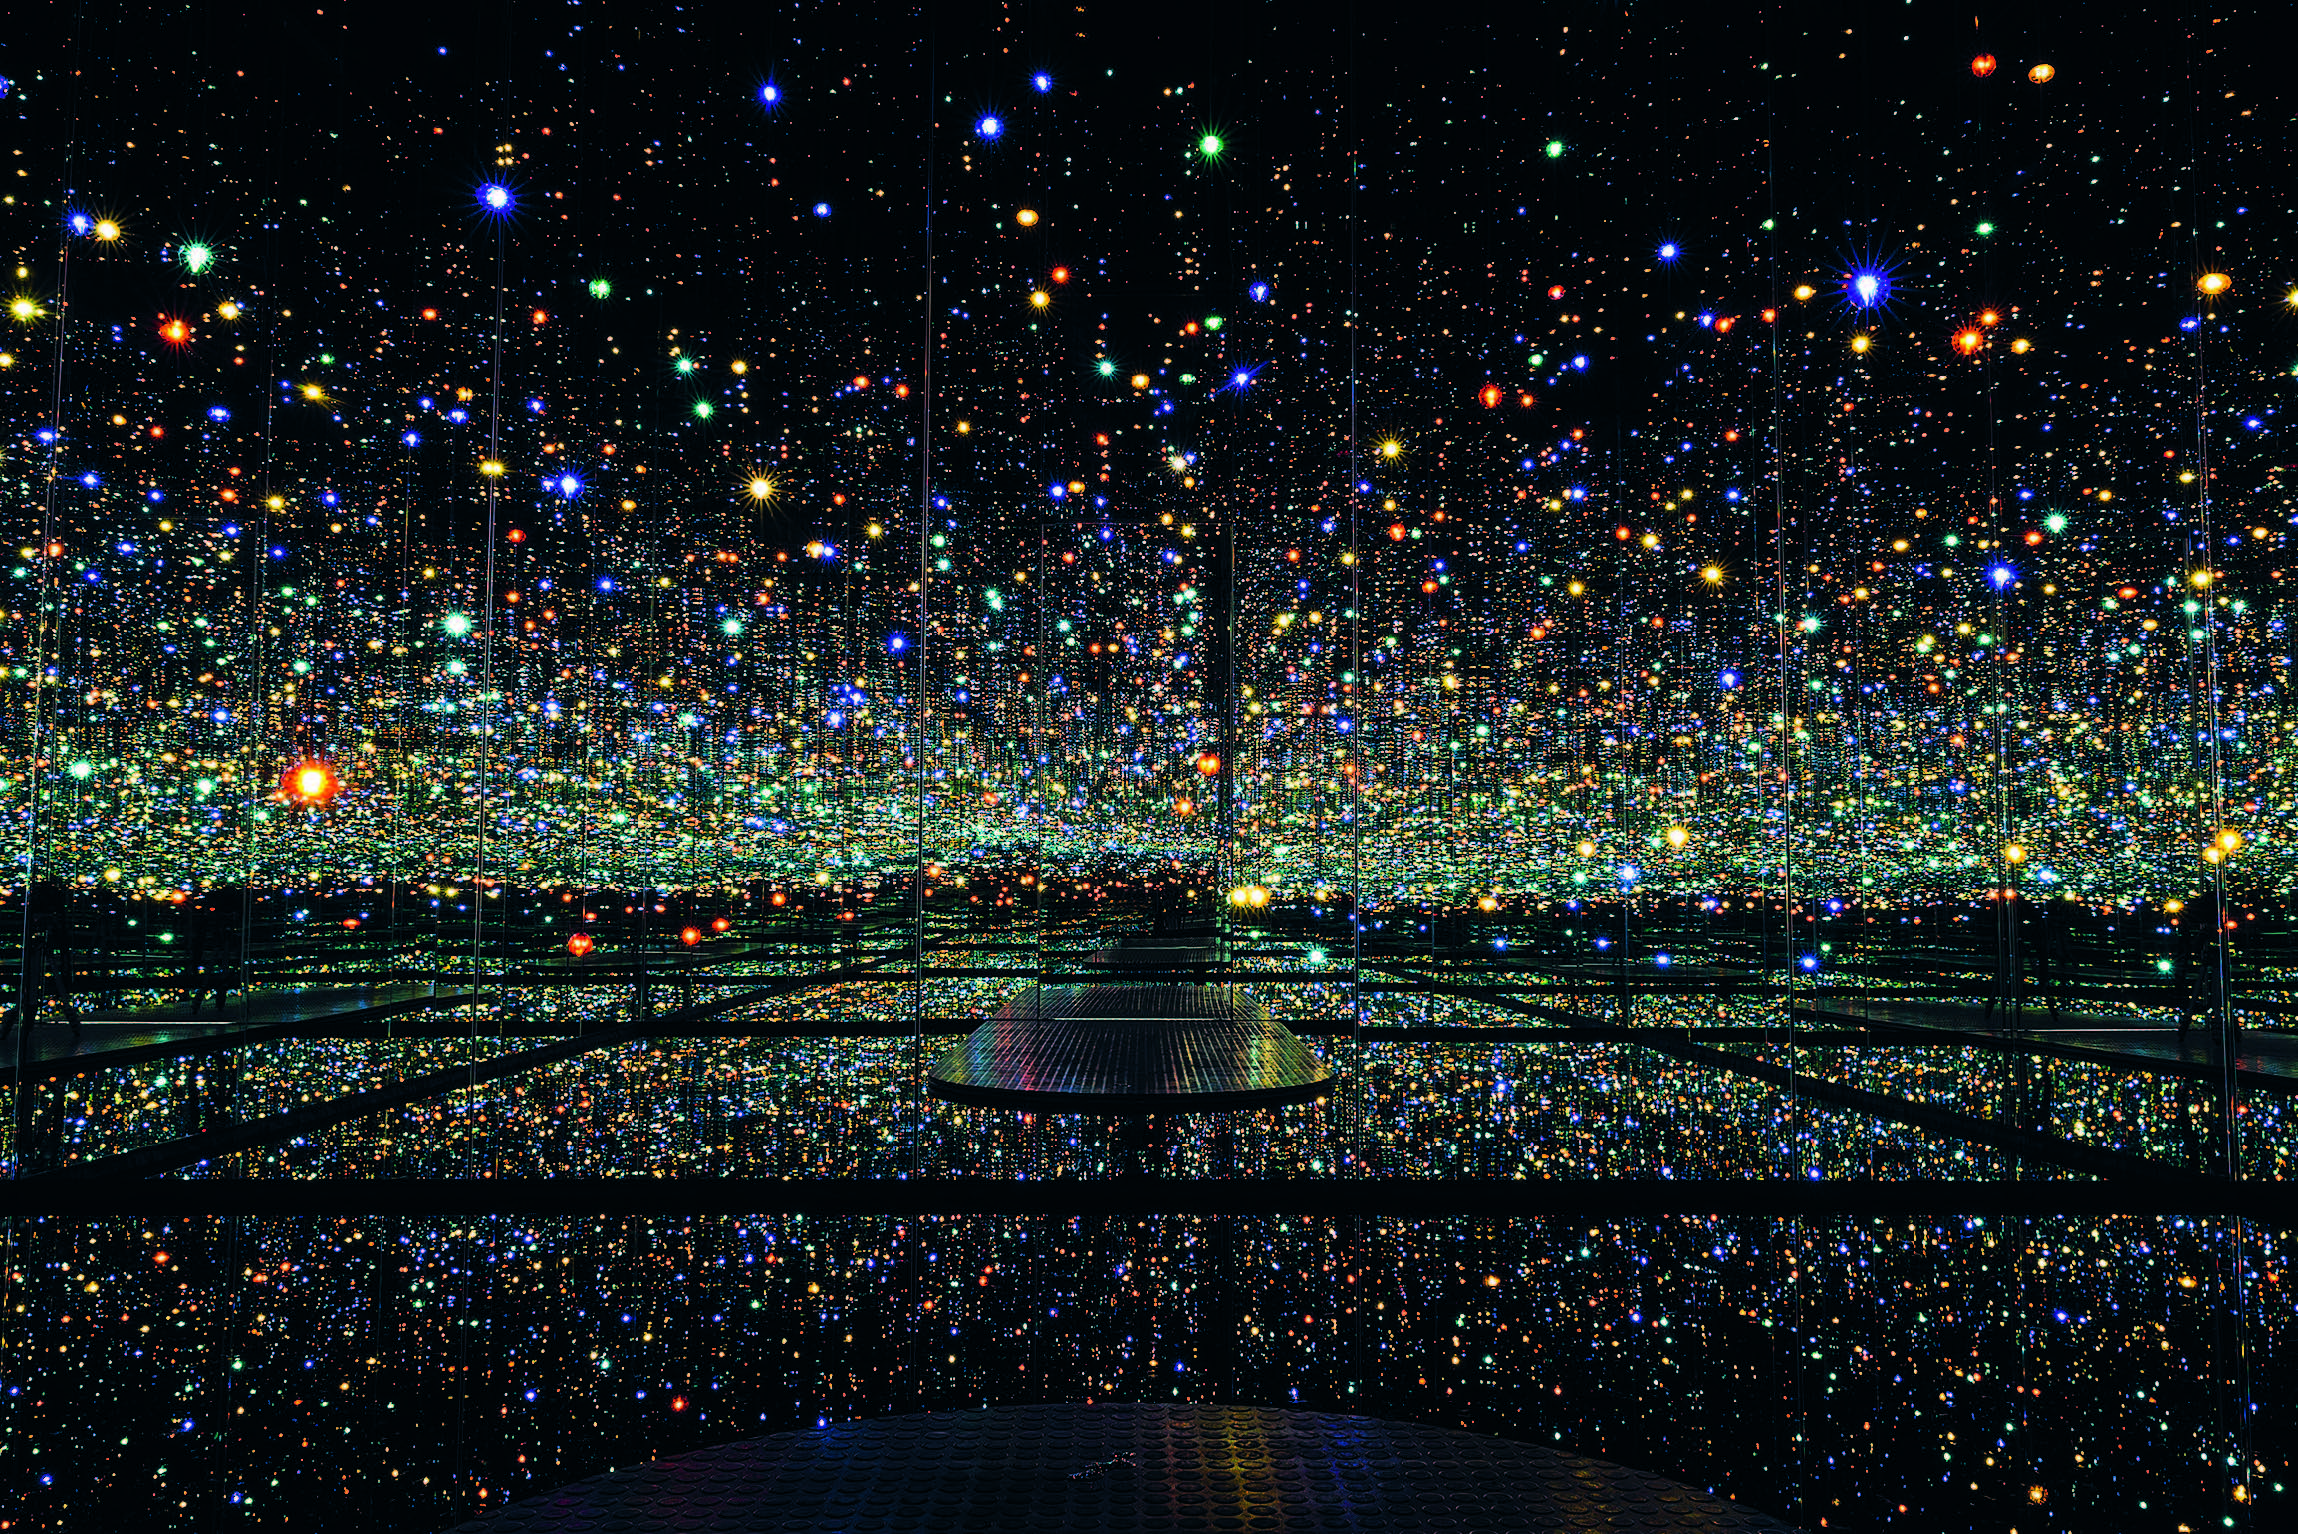 The Broad: Yayoi Kusama's Infinity Mirrored Room